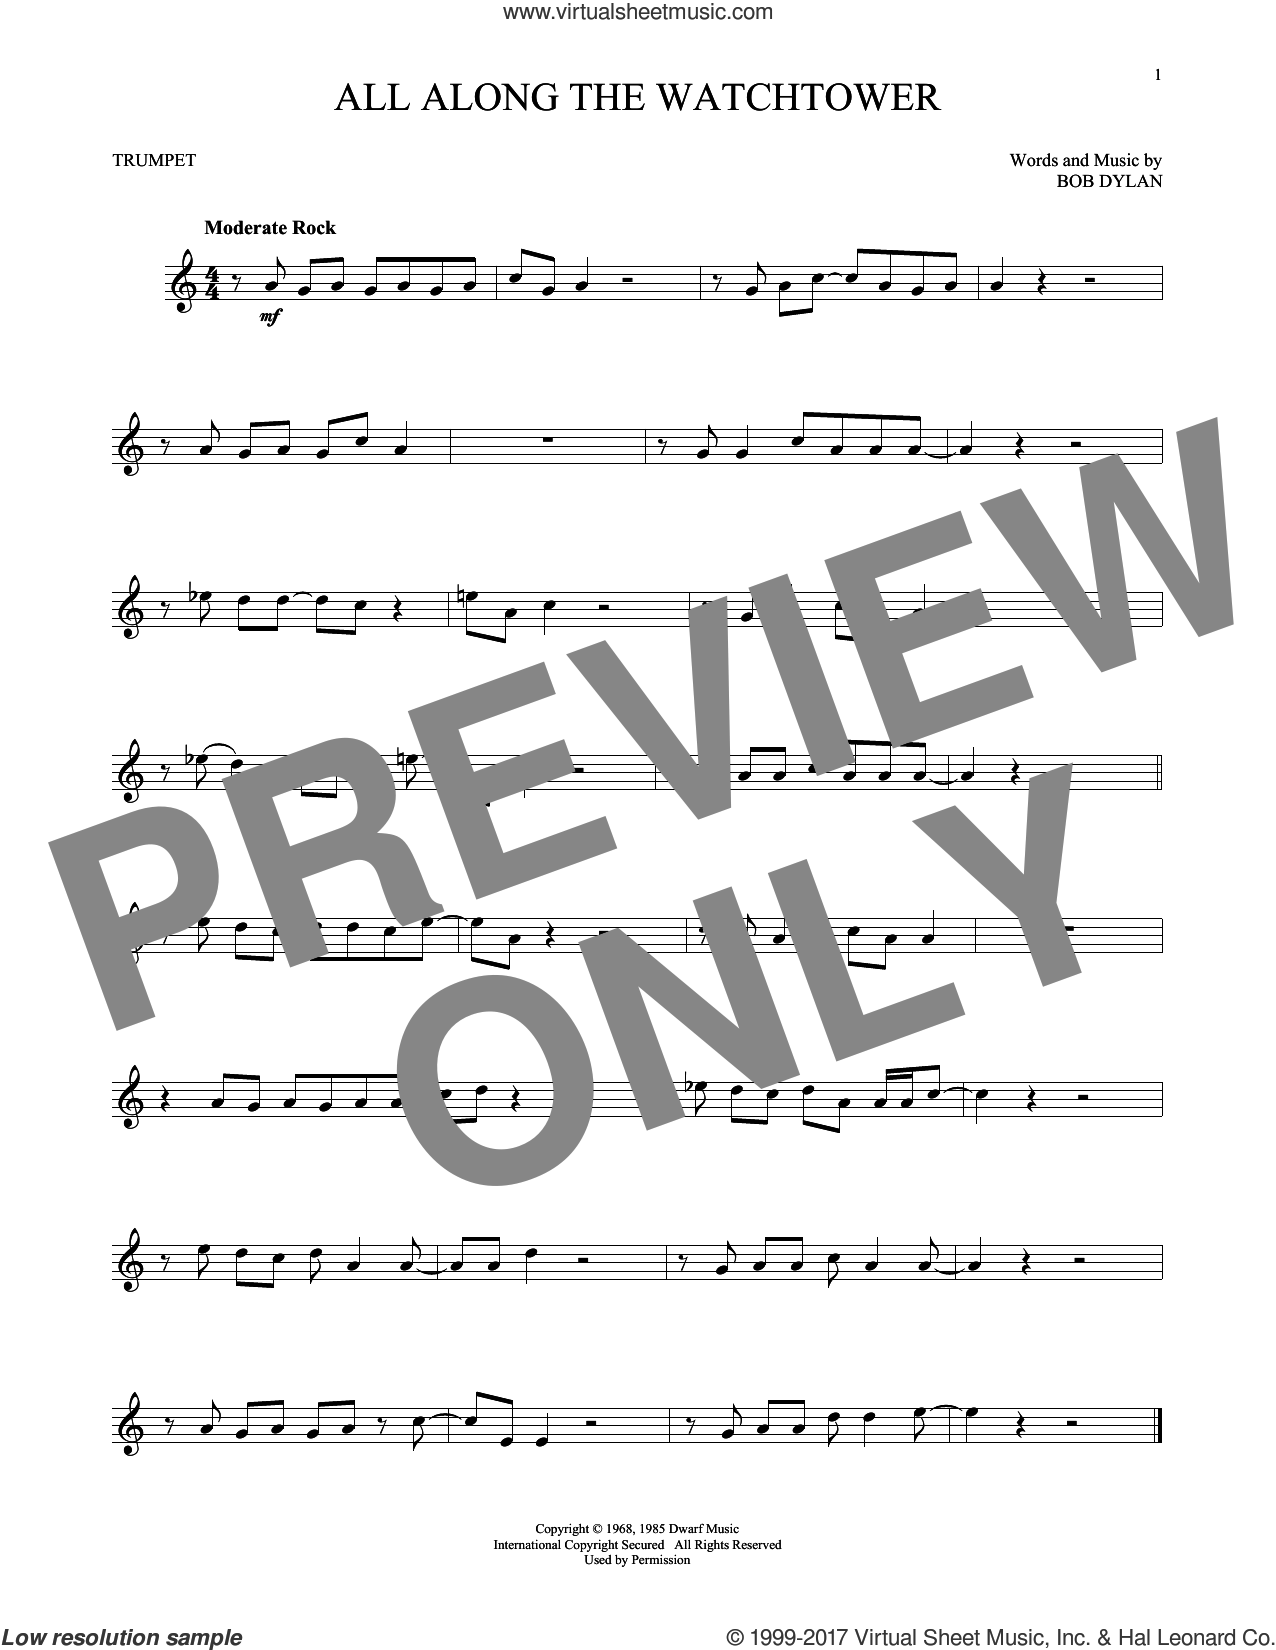 All Along The Watchtower sheet music for trumpet solo by Bob Dylan, intermediate skill level